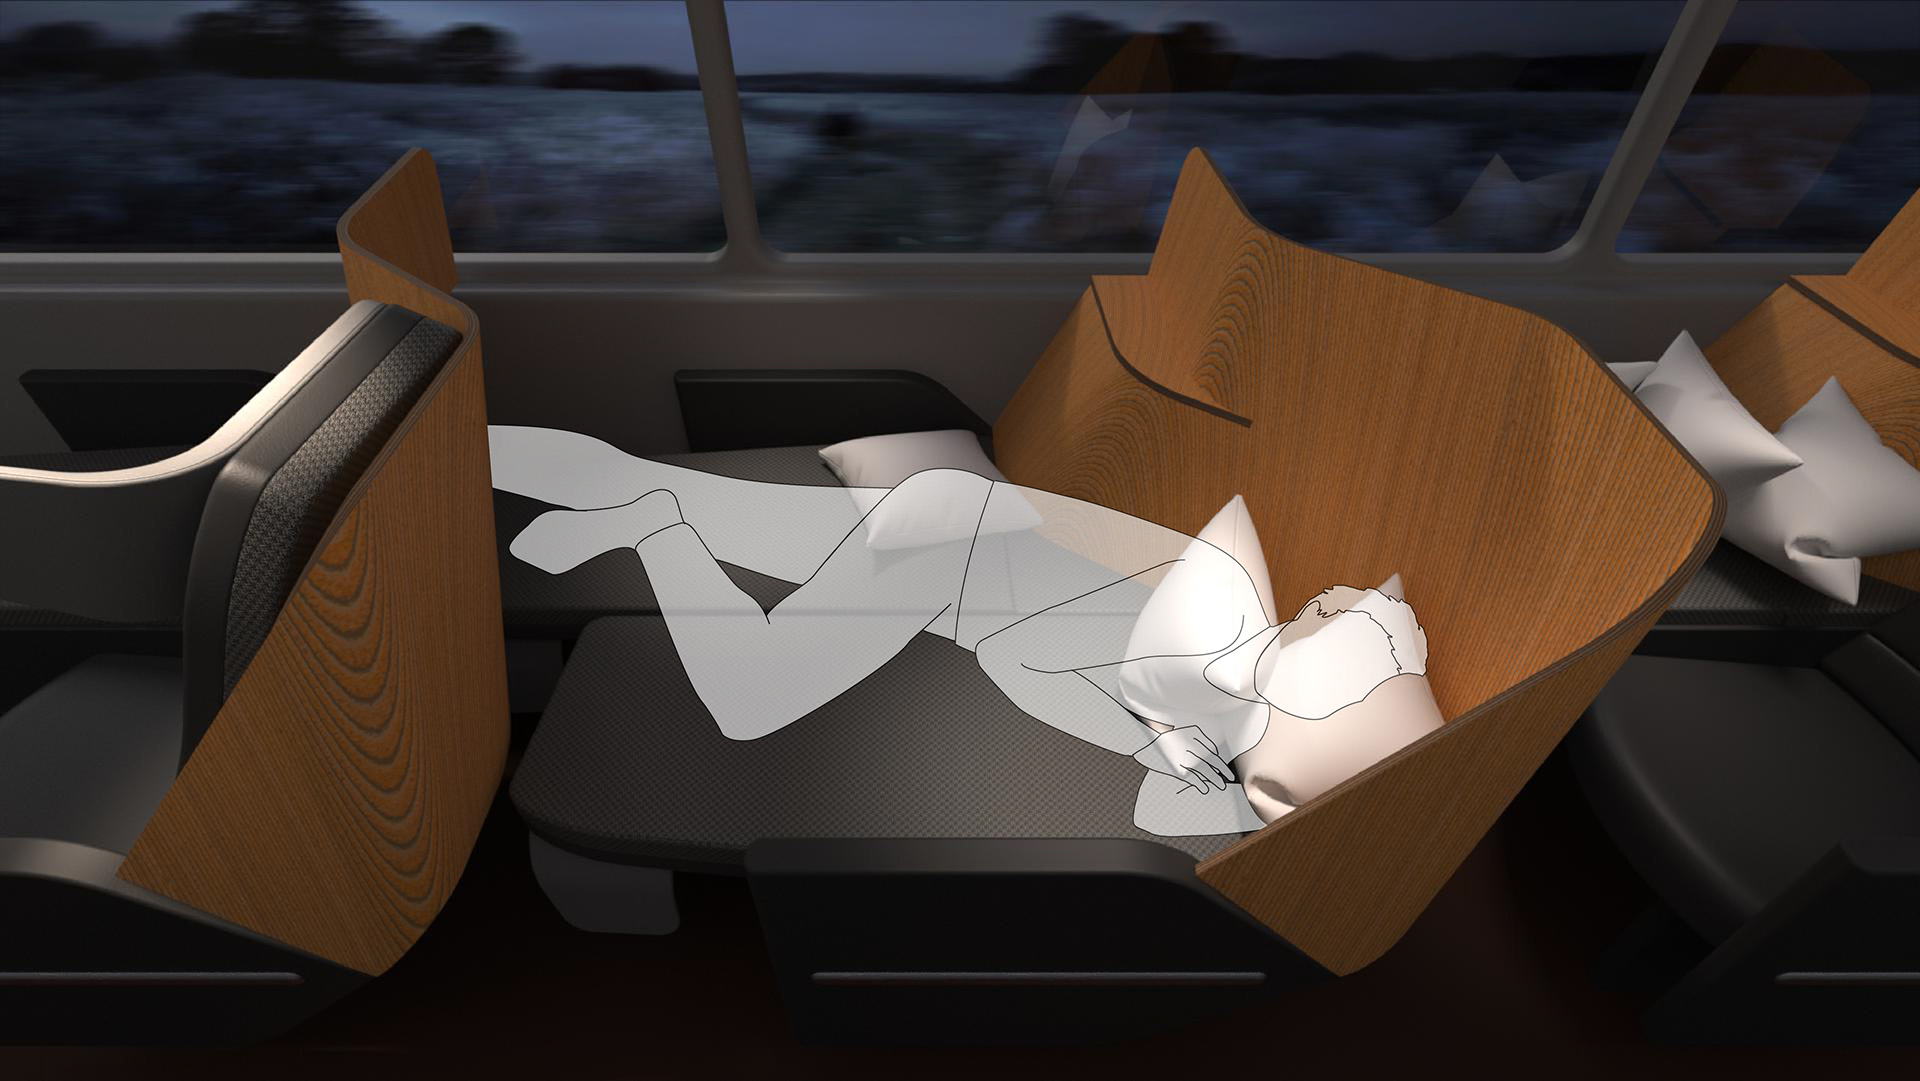 Nap - Fall asleep in Boston, wake up in Washington. With both seats folded down, passengers can nap away in their own personal bed, stretching over 78 inches tip-to-tip. Road trips have never been more relaxing.